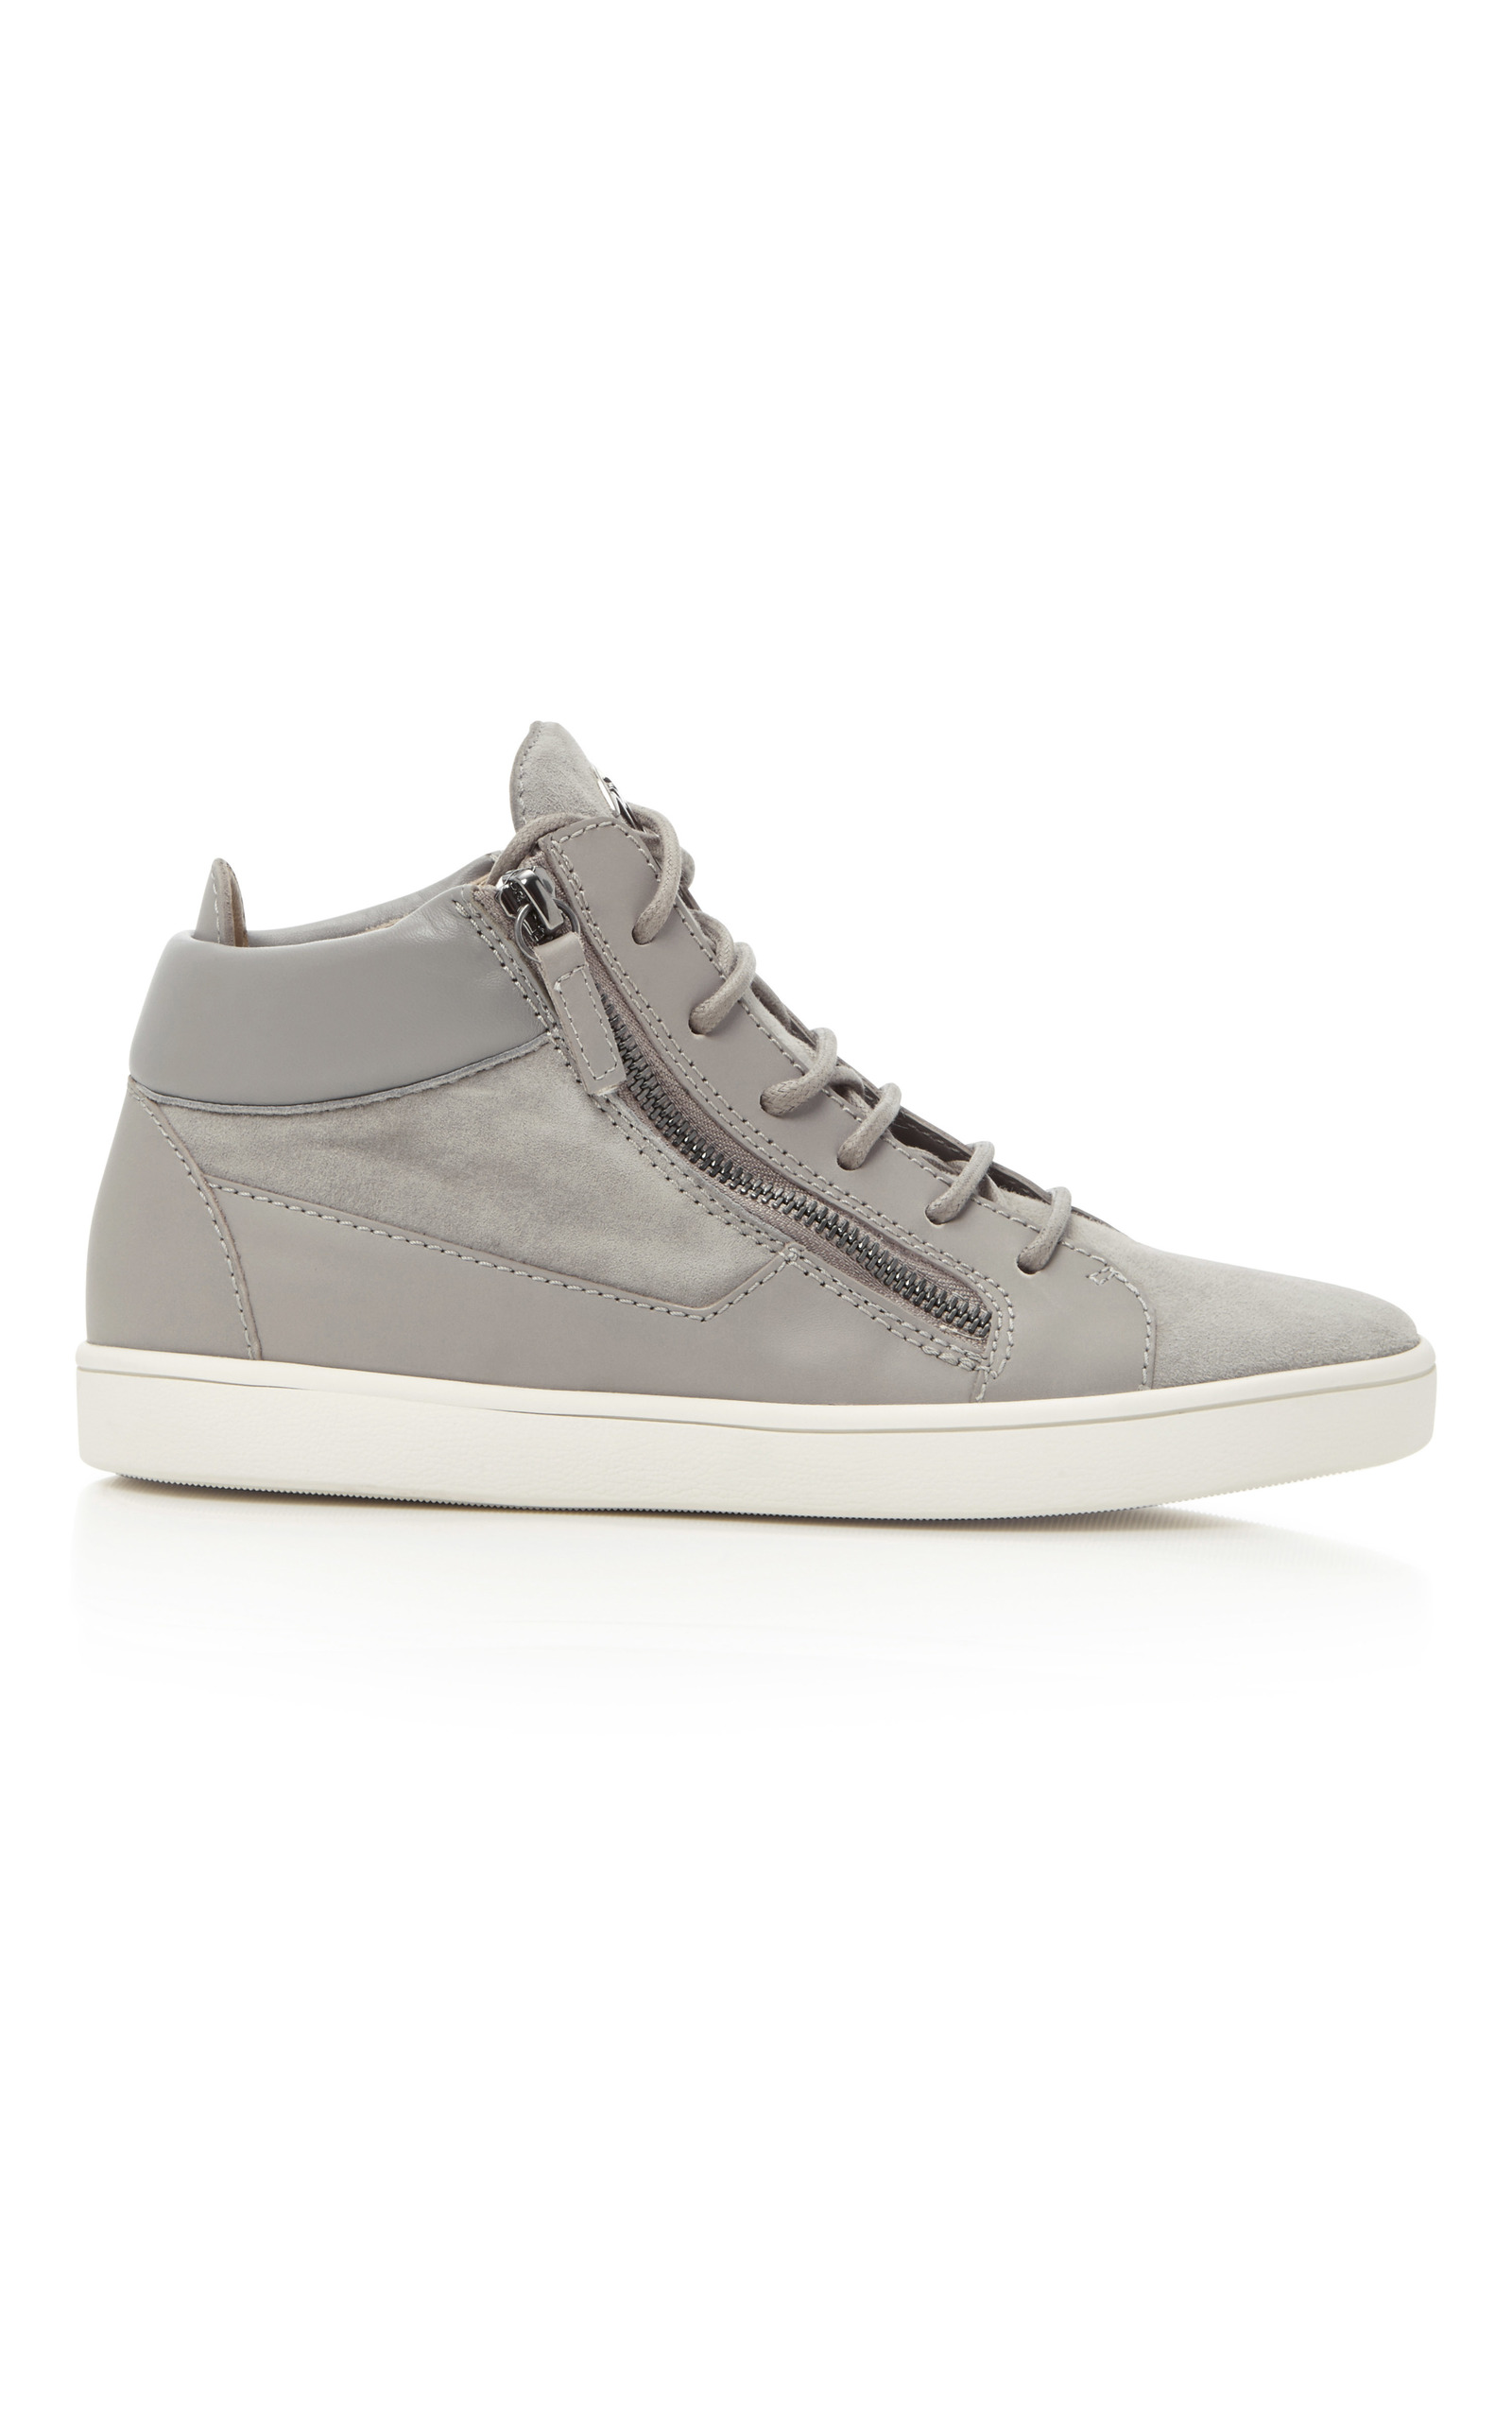 874f82a55316 Sloane Suede and Leather Sneakers by Giuseppe Zanotti